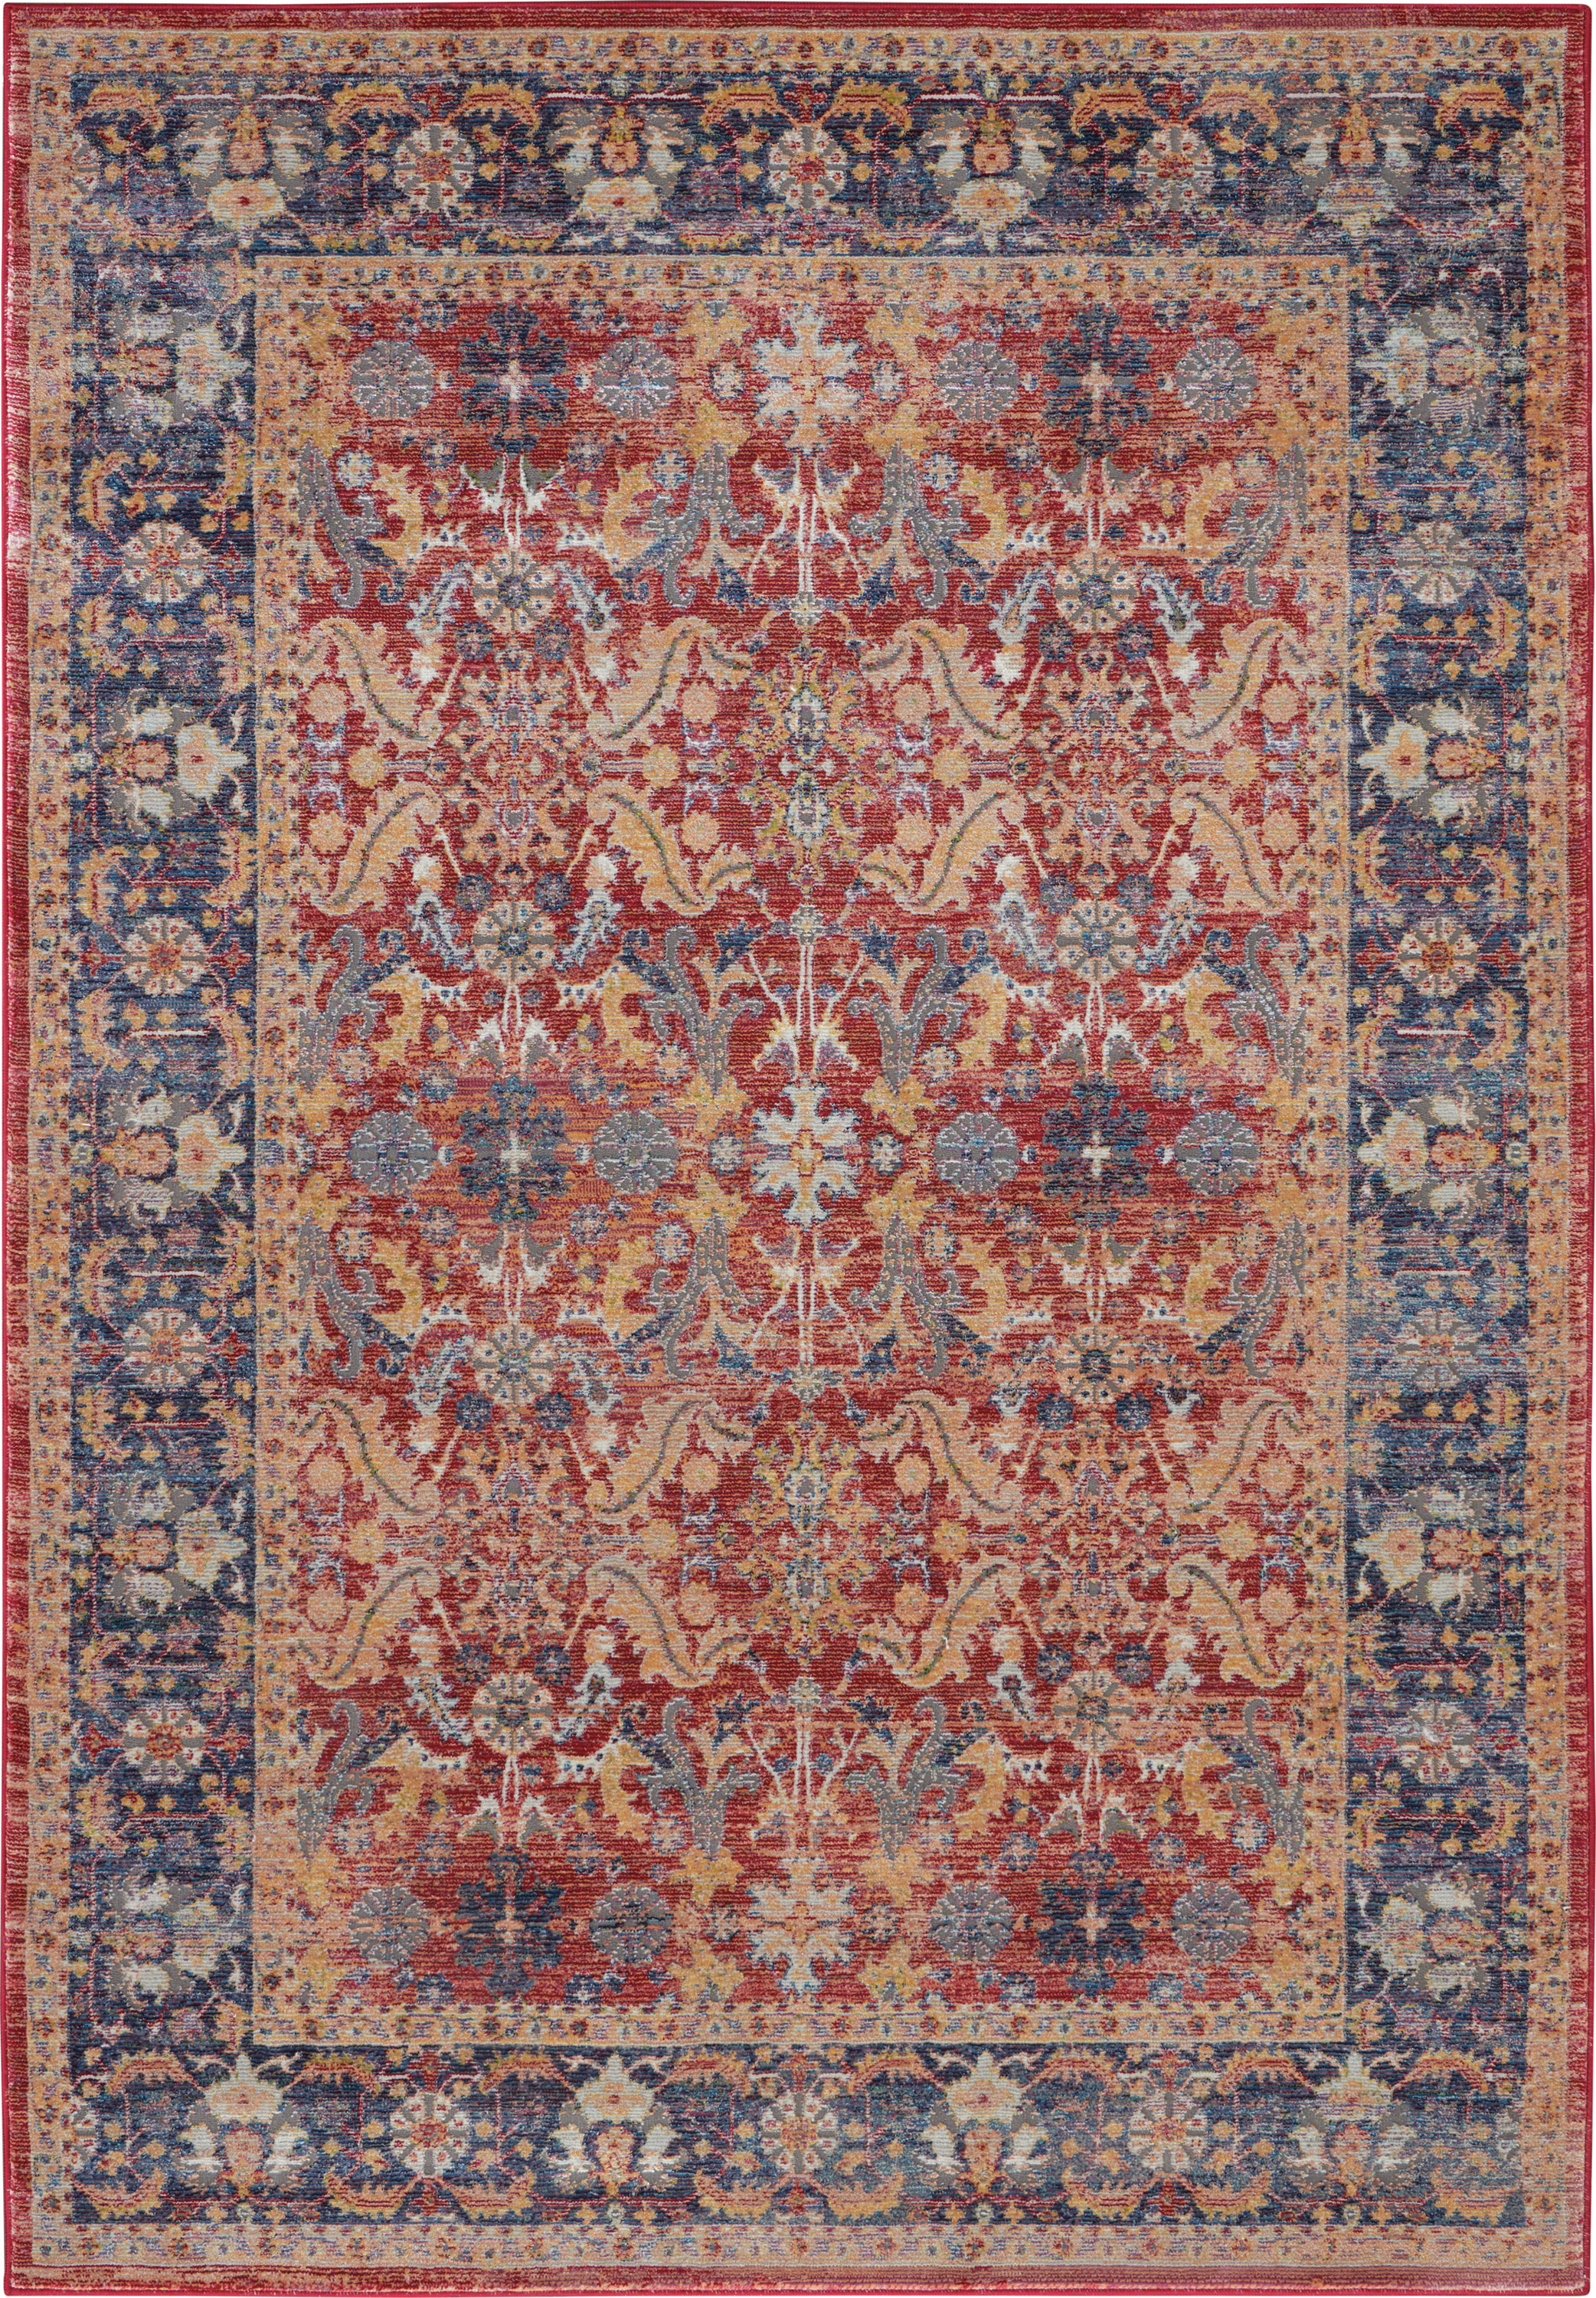 Nourison Ankara Global 4' X 6' Red And Blue Multicolor Persian Area Rug